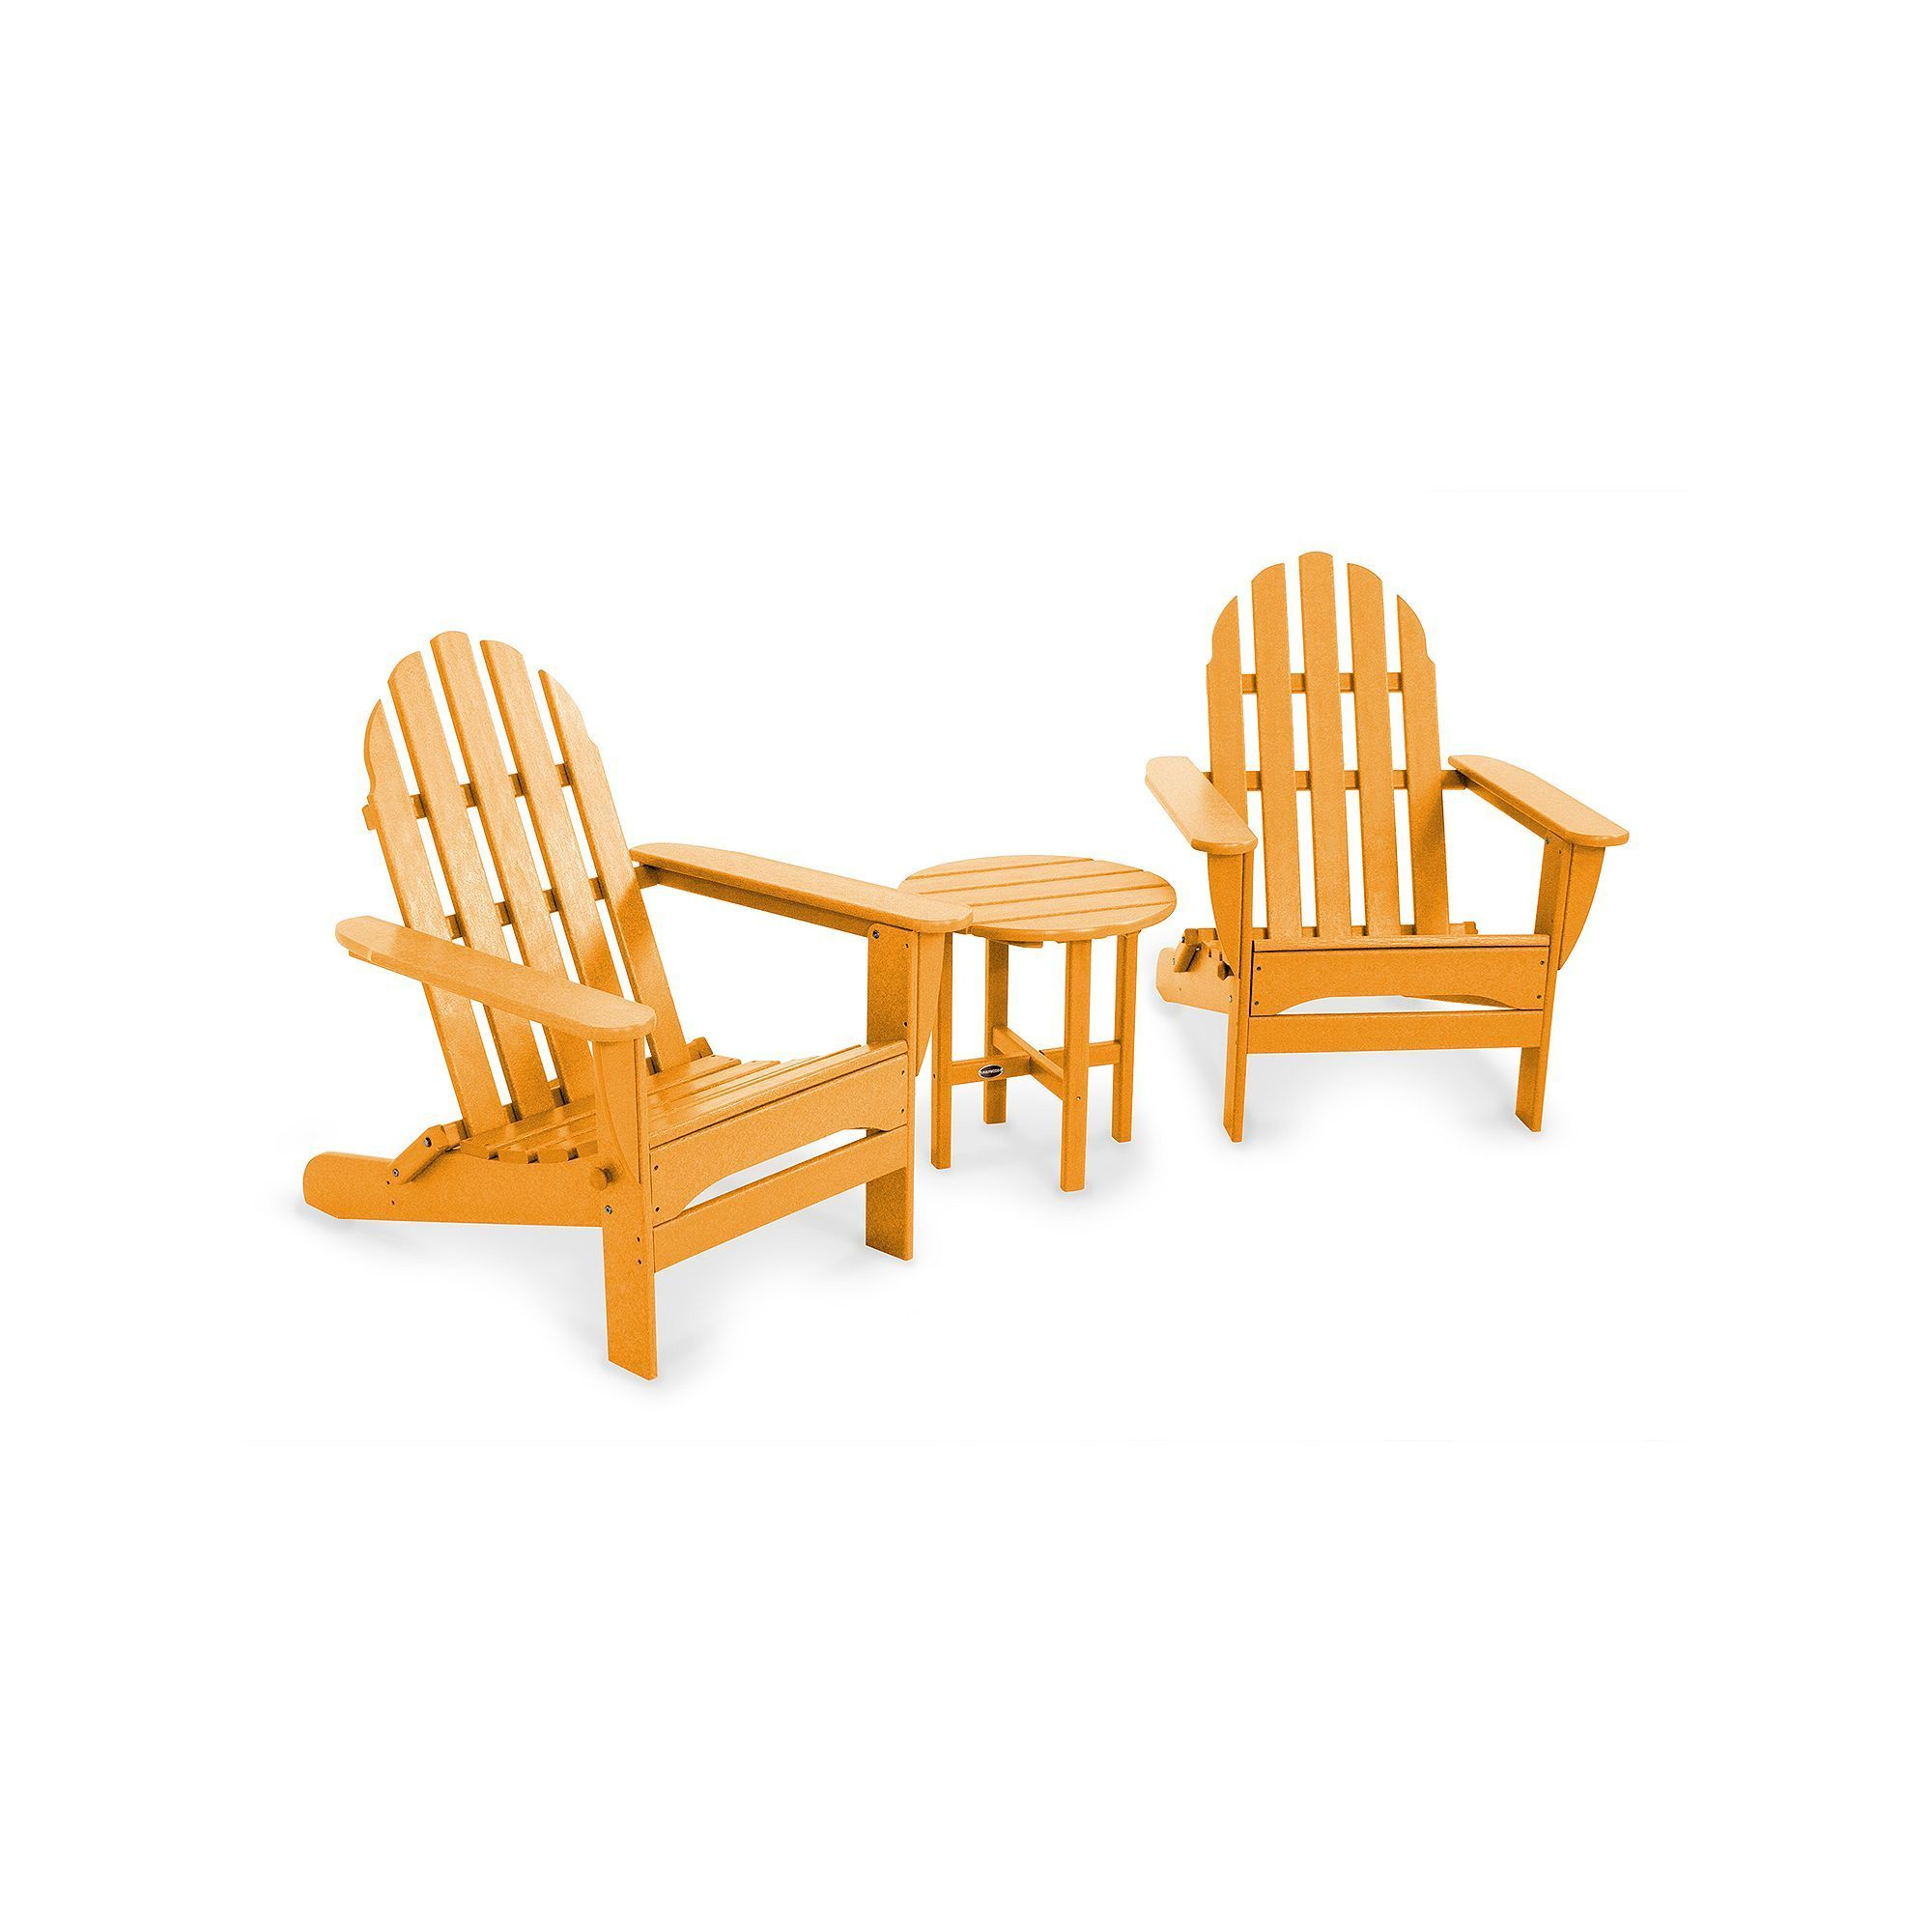 3 pc Classic Folding Adirondack Chair and Table Set Outdoor Orange